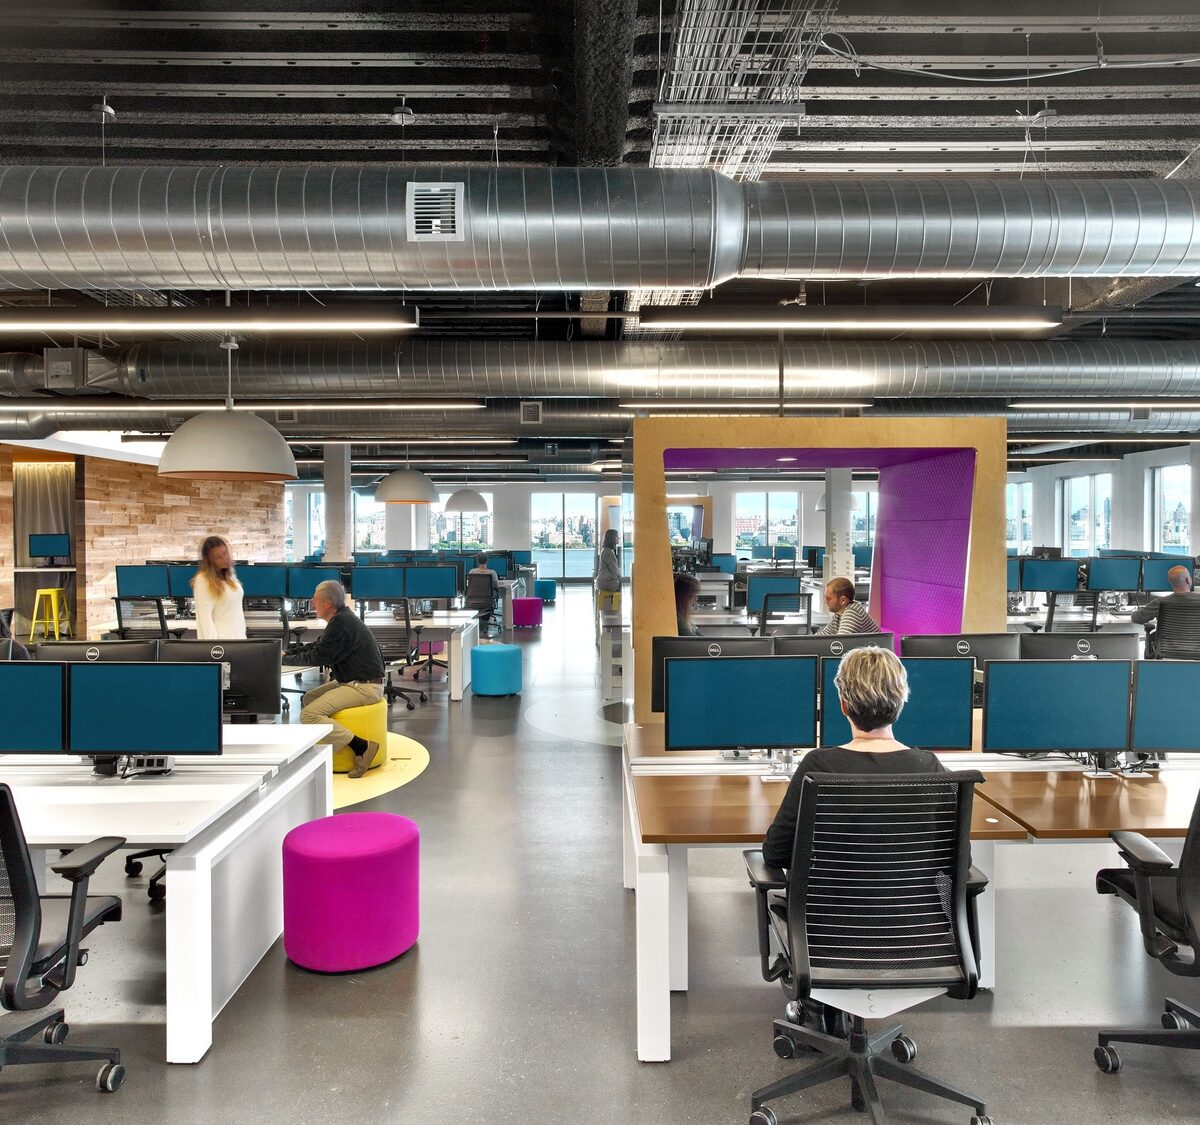 jet.com hoboken new jersey office open plan office with bright purple colors